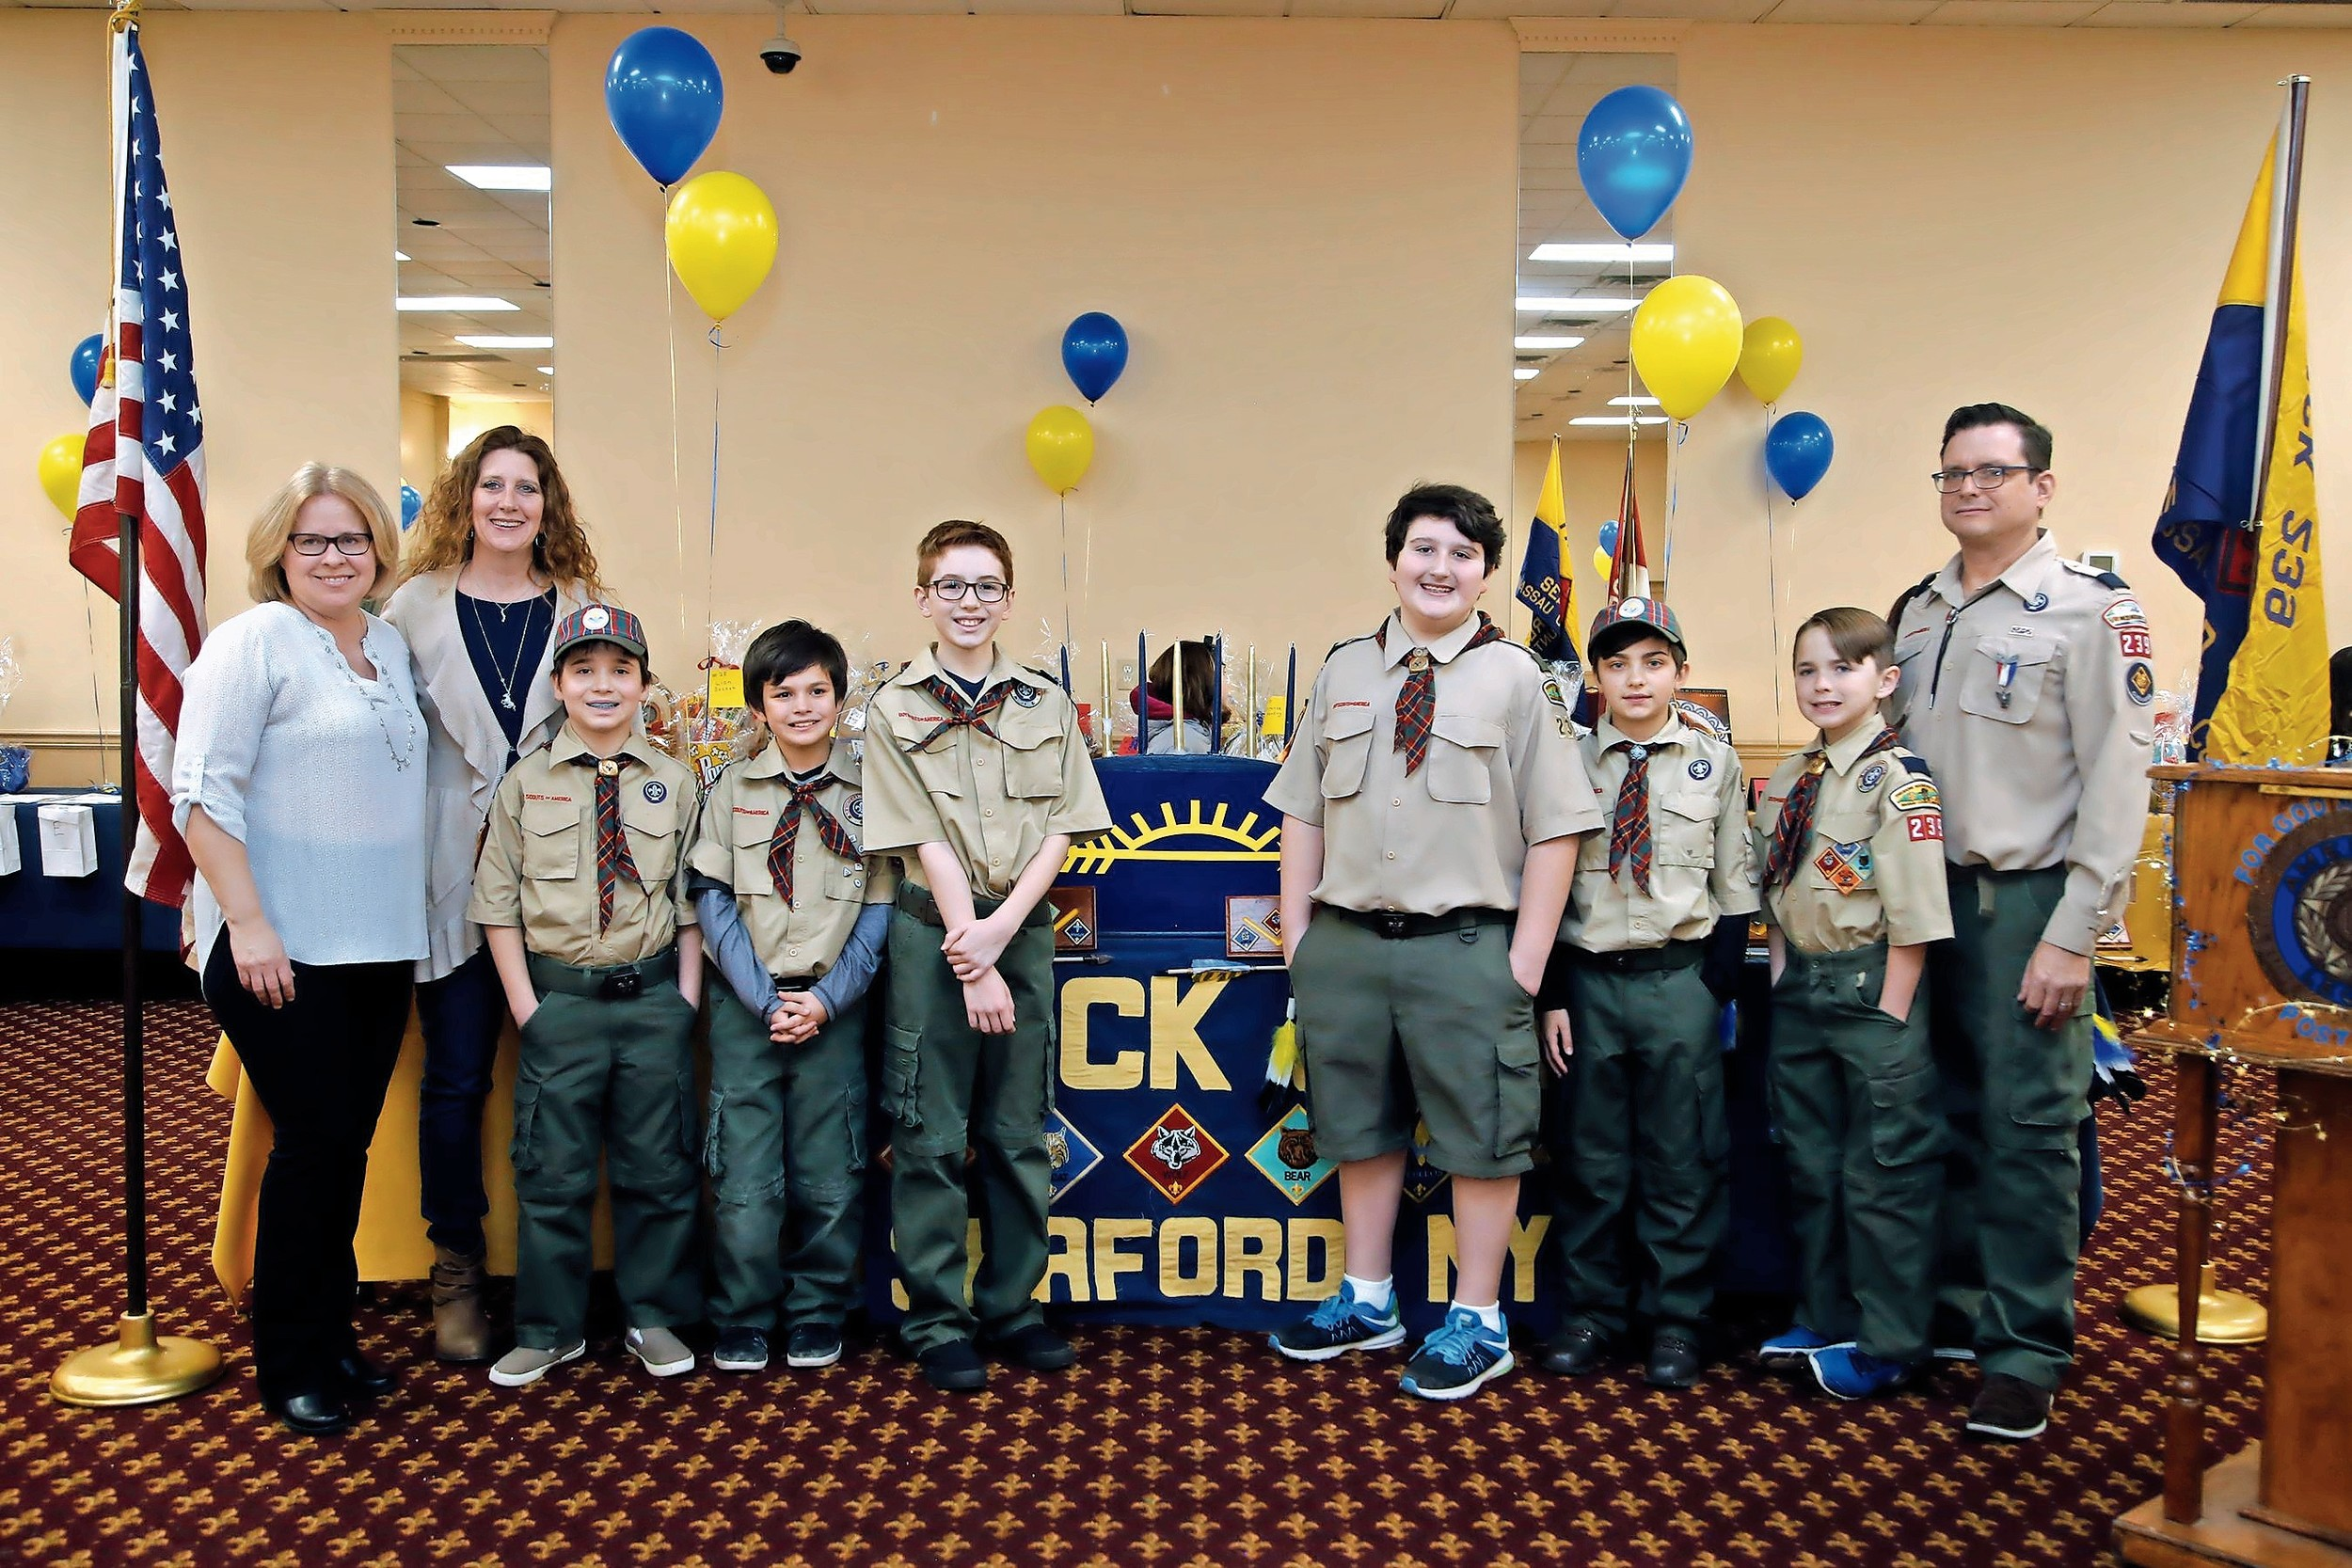 Teija Minerva, Webelos 11 den leader, Treasurer Mary Murphy and Cubmaster James Price congratulated the Arrow of Light honorees — Mikko Minerva, AJ Flores, Luke Donovan, Brendan Murphy, Charles Herman and James Price — at the banquet on March 5.